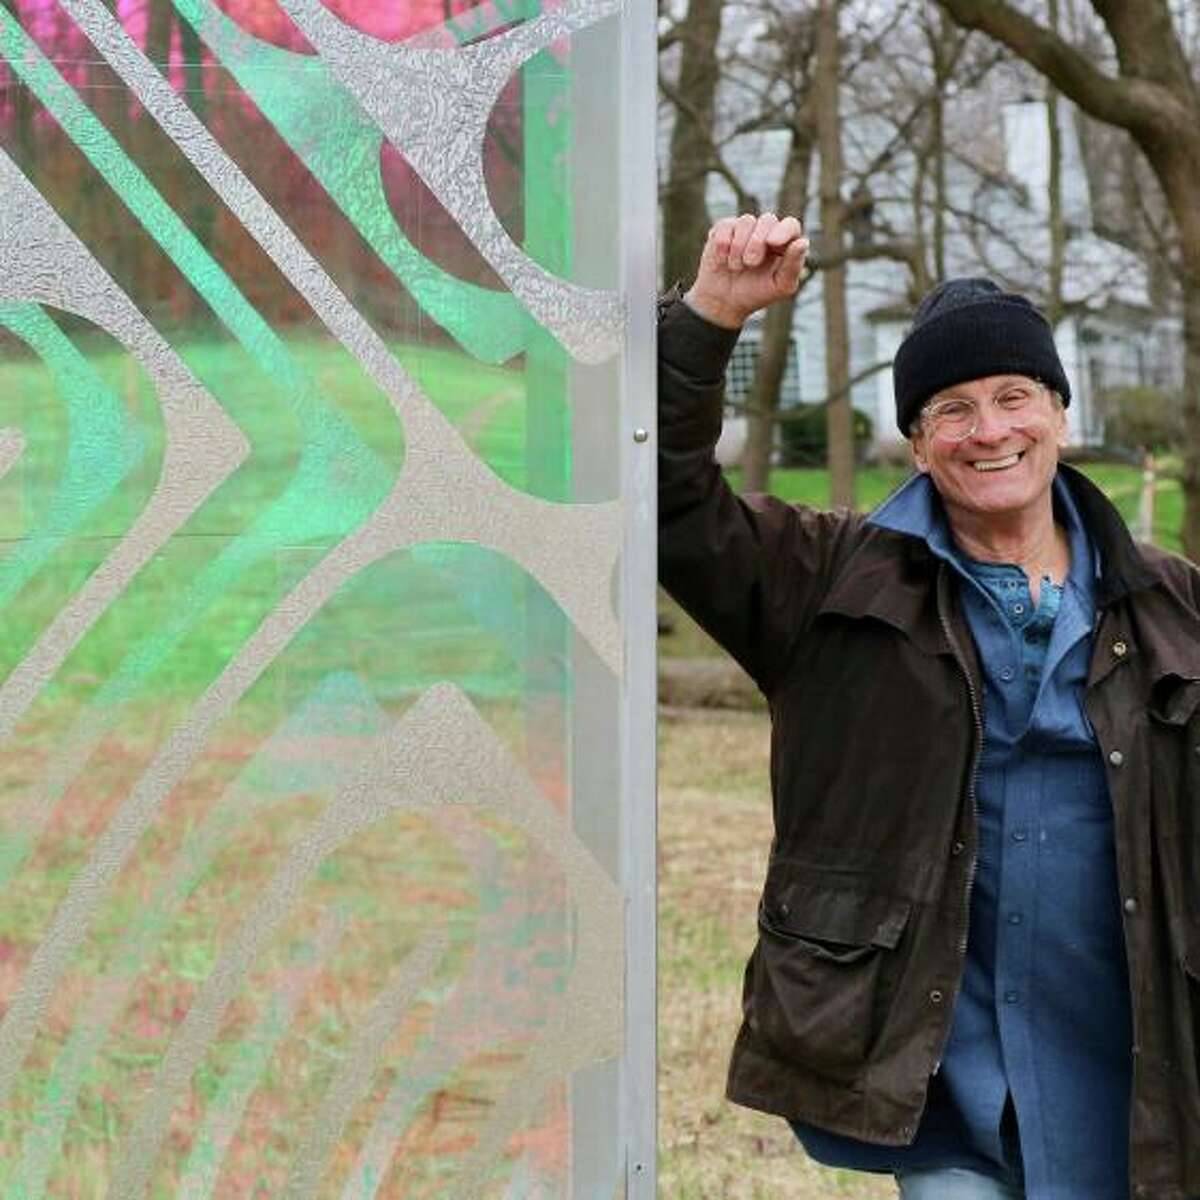 Passages, created by Norwalk-based artist, Thomas S. Berntsen, is a series of seven eight-foot-tall panels that meander along a path in the center of the Hannan-Eberstadt Preserve.